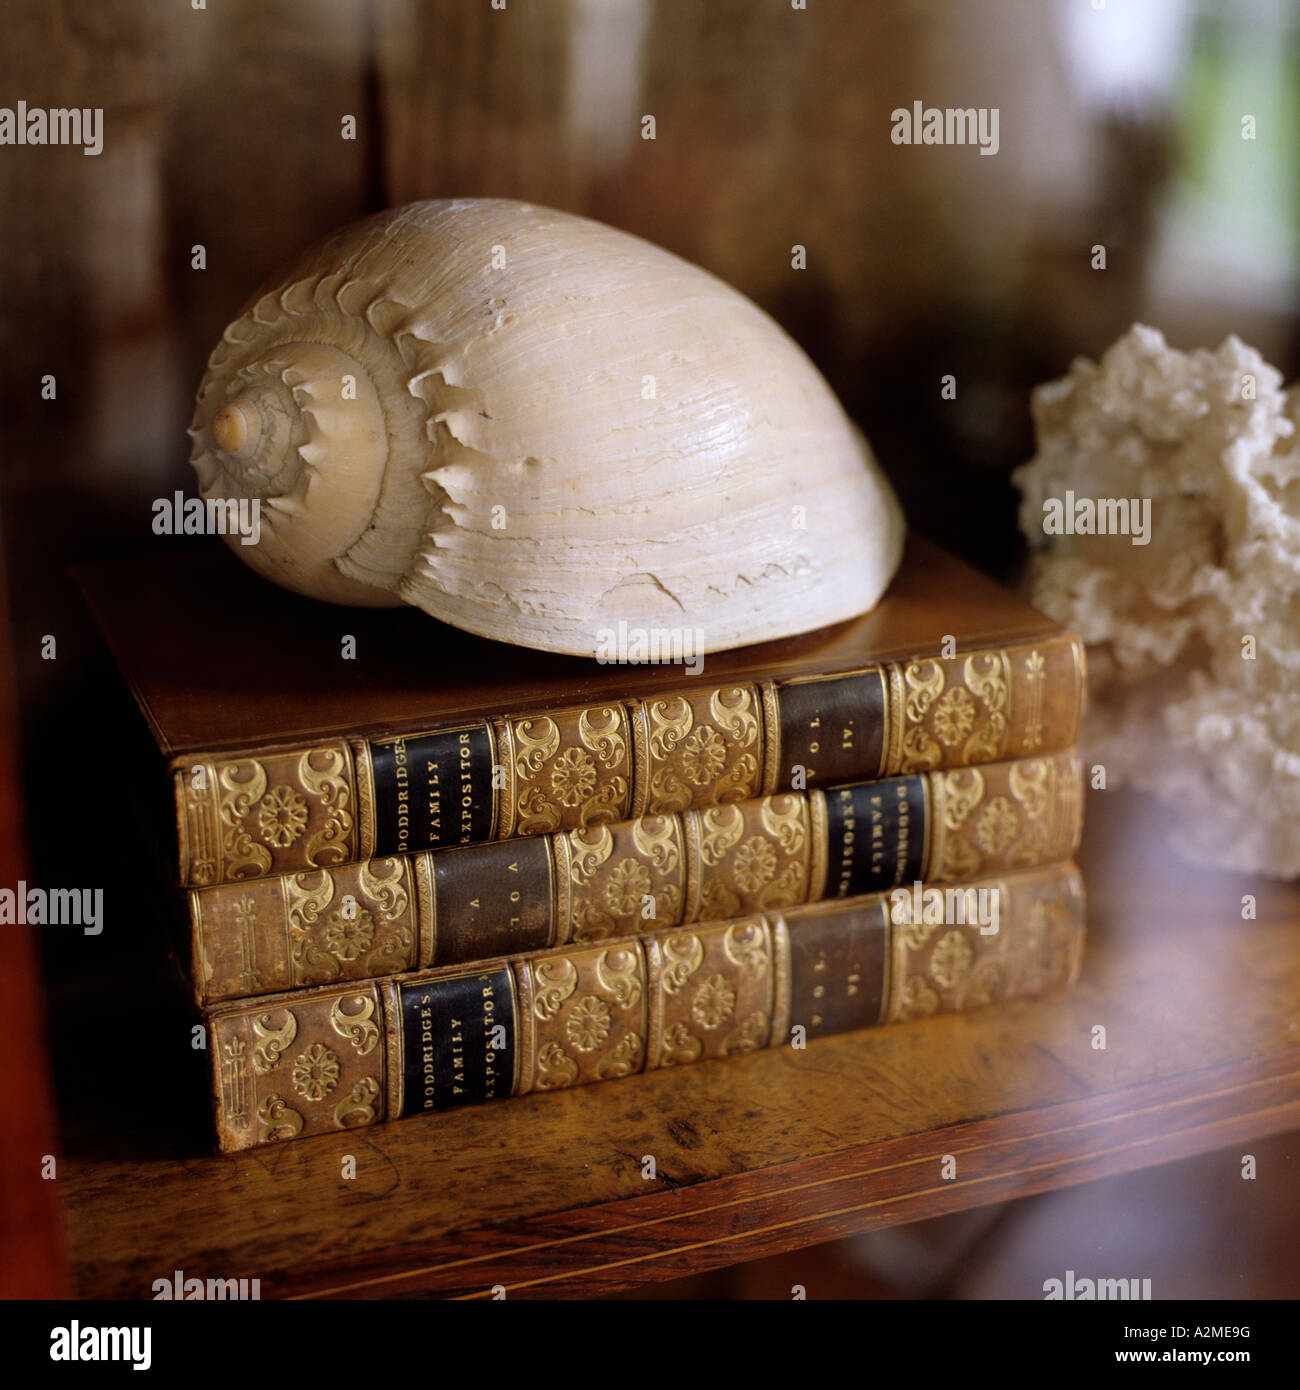 Seashell on book pile in glass-fronted bookcase - Stock Image